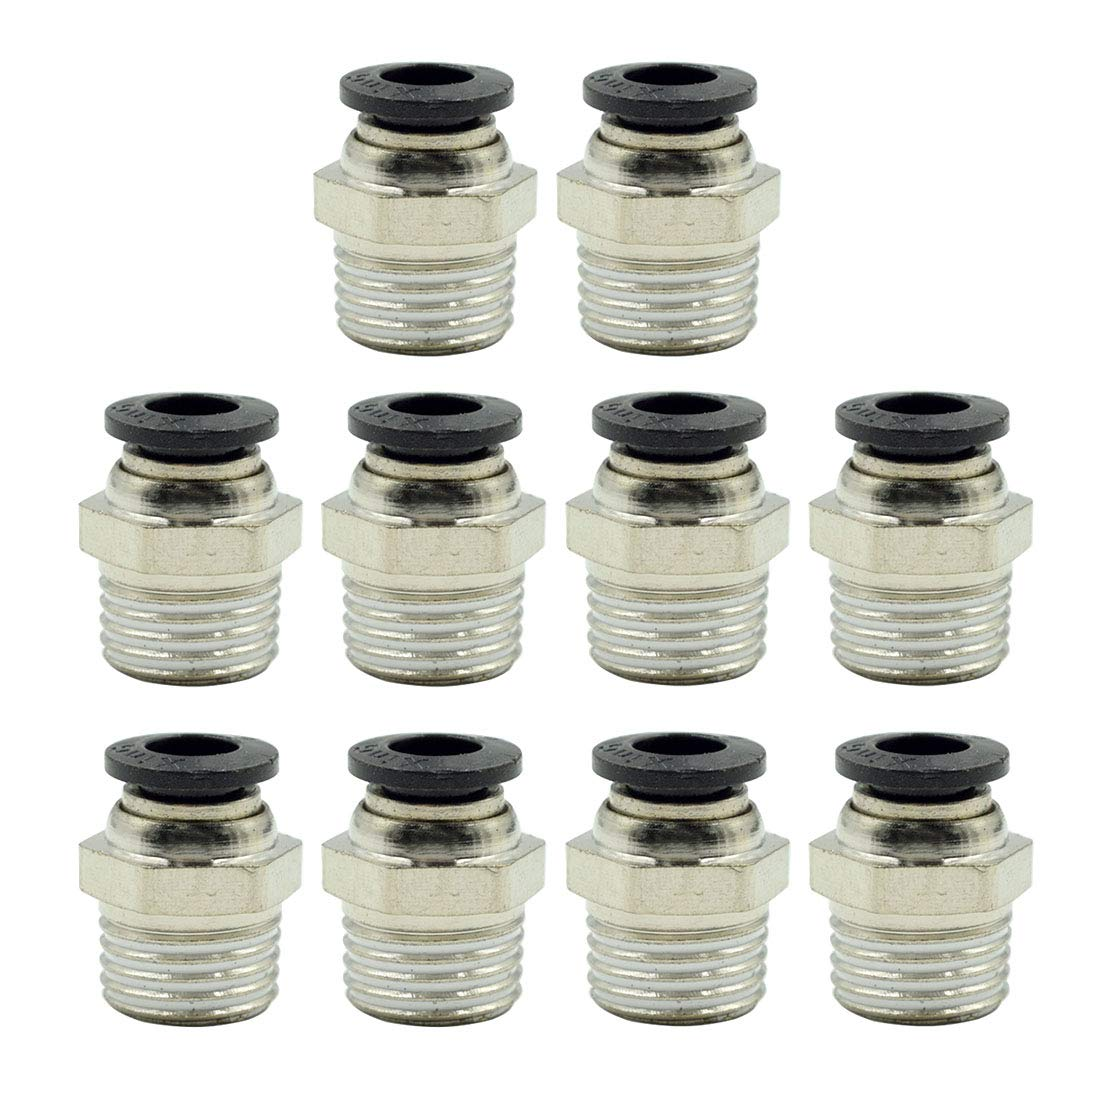 TOUHIA Pneumatic Male Straight 6MM Tube OD x 1//4 PT Thread Push to Connect Fittings PC 6-02 10PCS